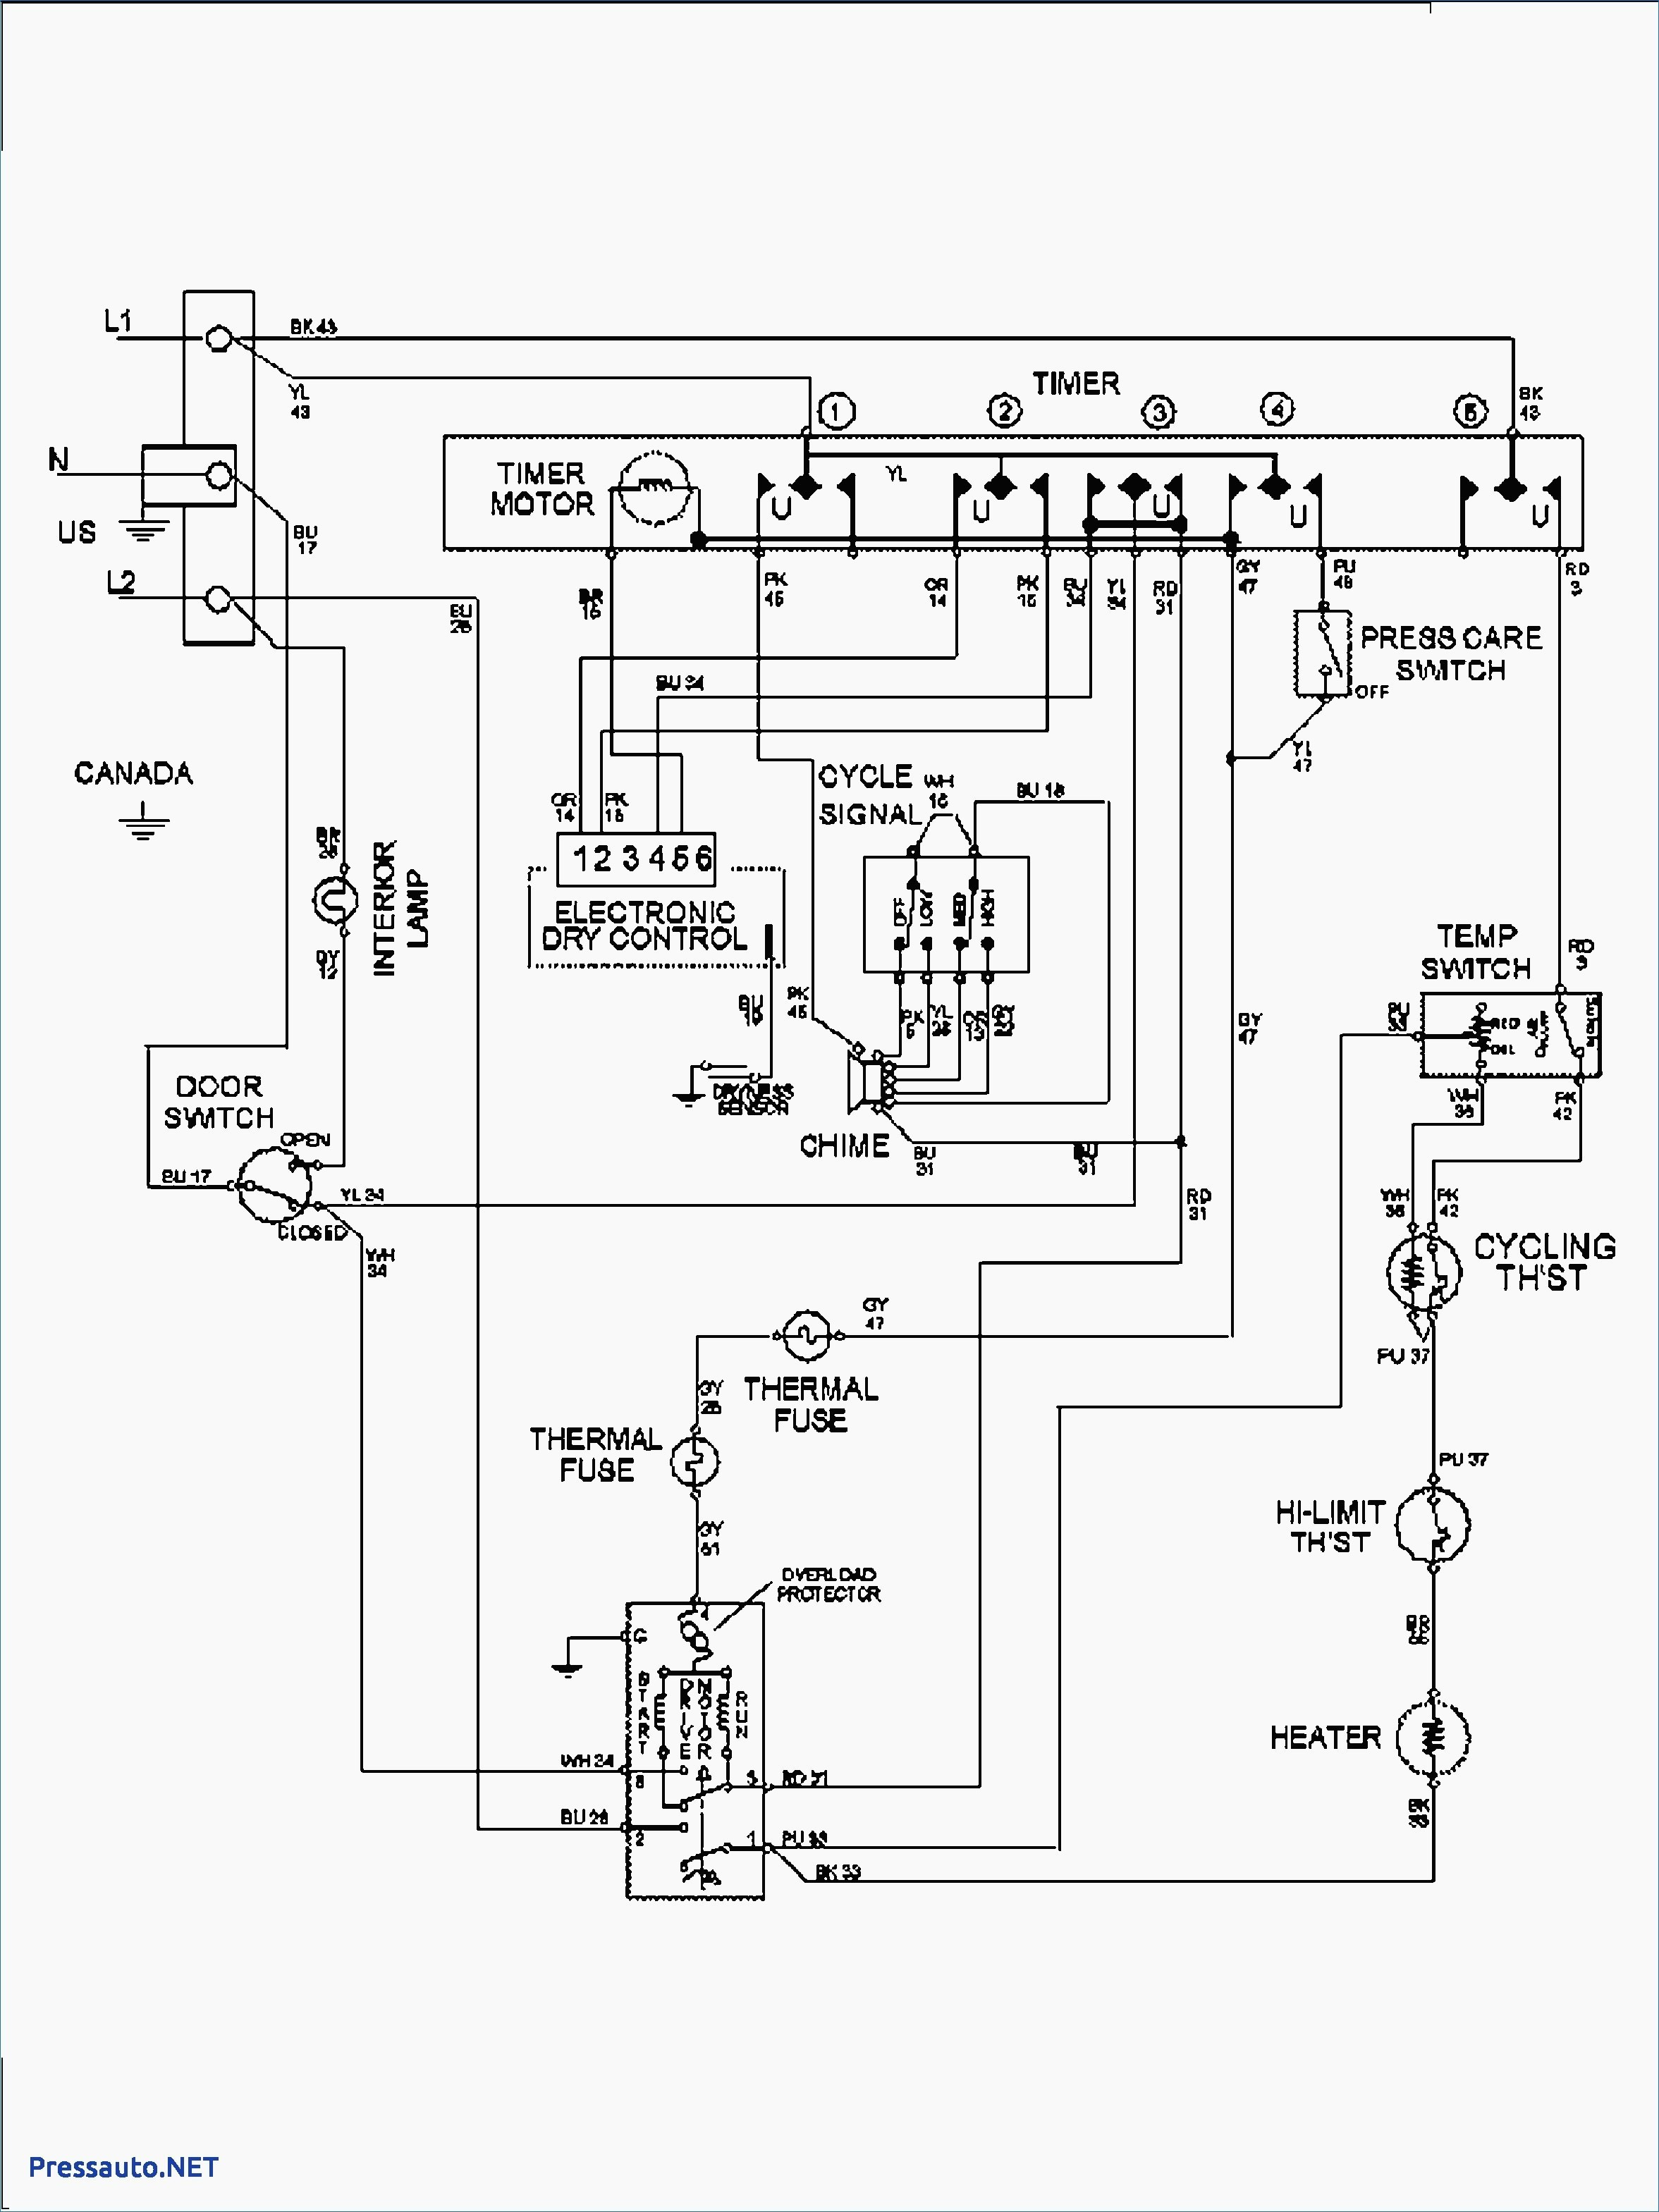 Wiring Diagram Whirlpool Dryer Simple Wiring Diagram Appliance Dryer Inspirationa Amana Dryer Wiring